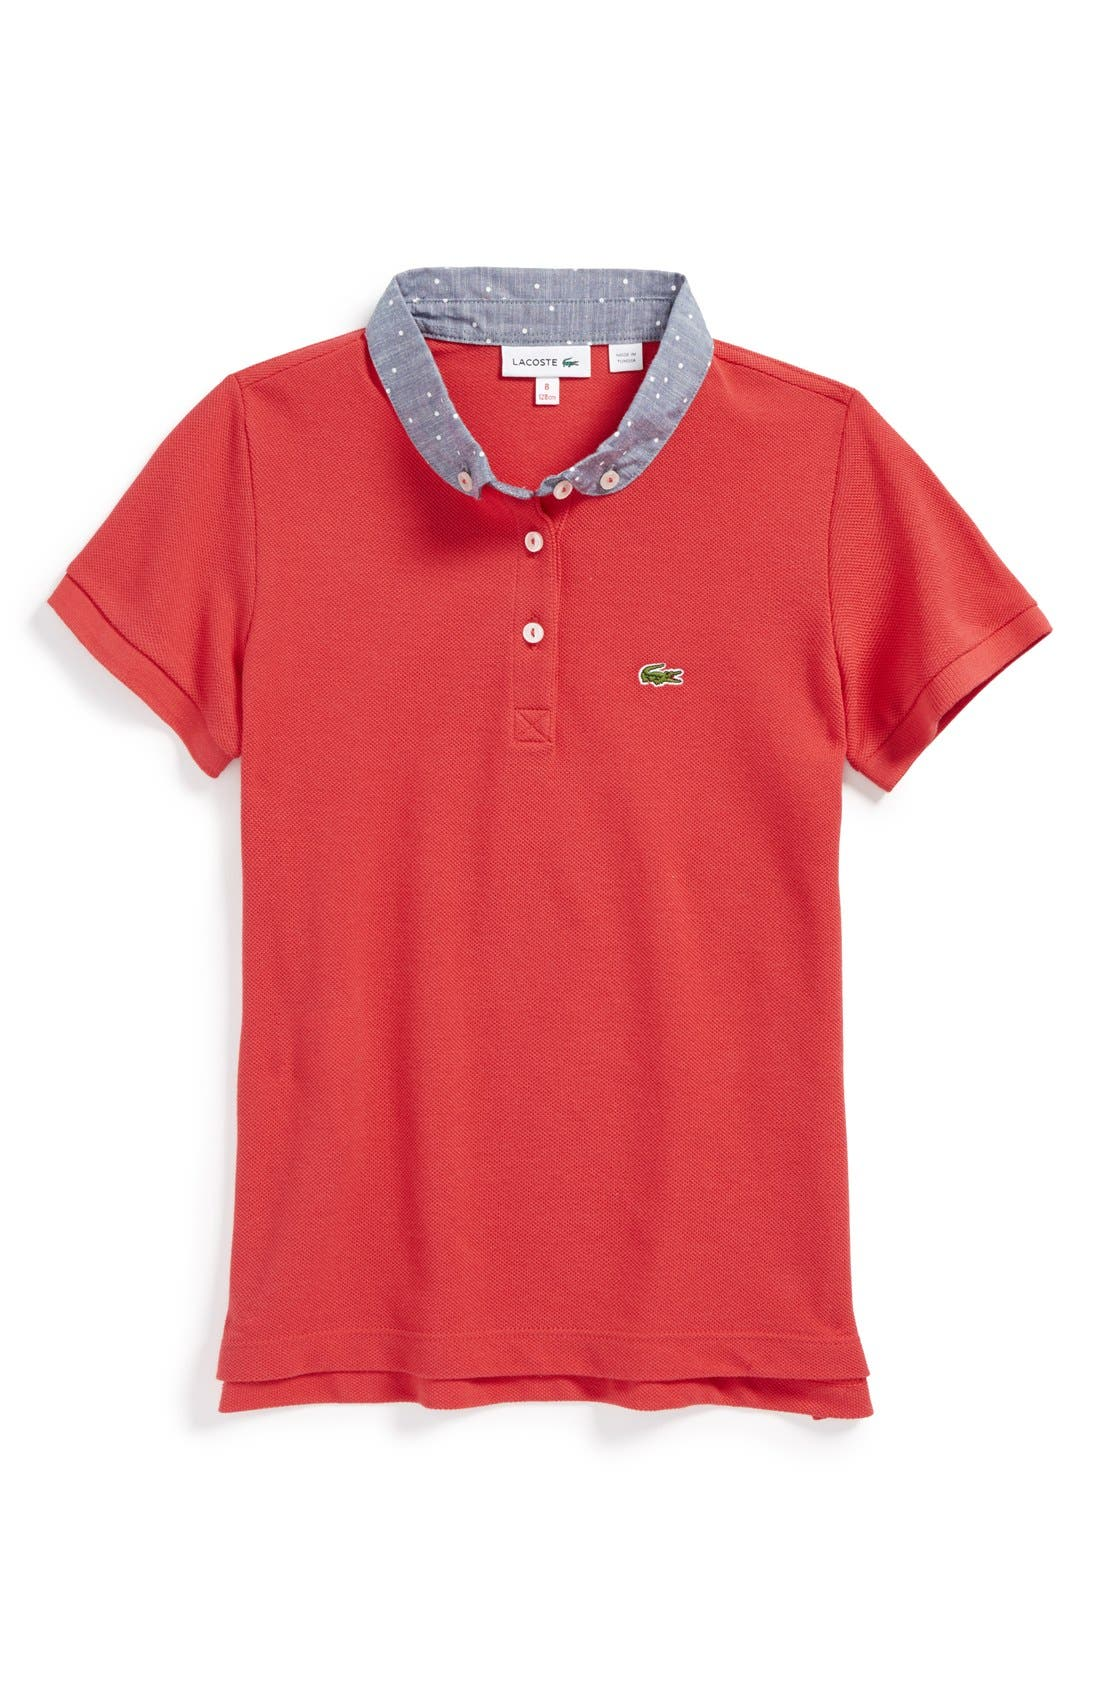 Alternate Image 1 Selected - Lacoste Contrast Collar Polo (Big Girls)